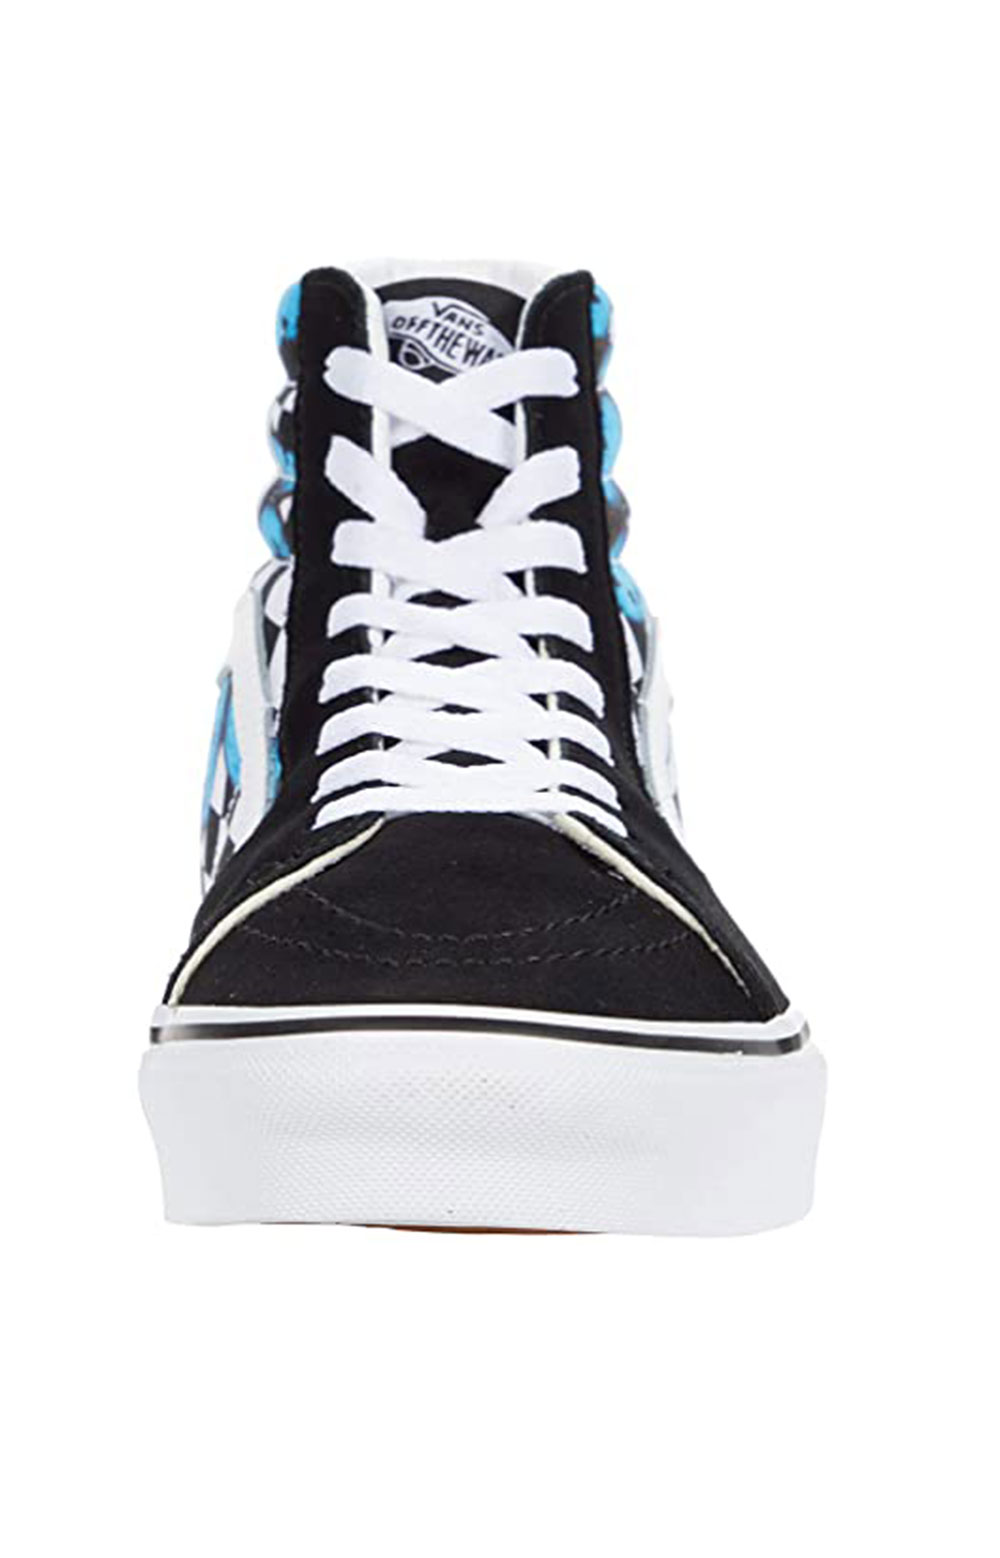 (HXV5KK) Butterfly Checkerboard Sk8-Hi Shoes  2